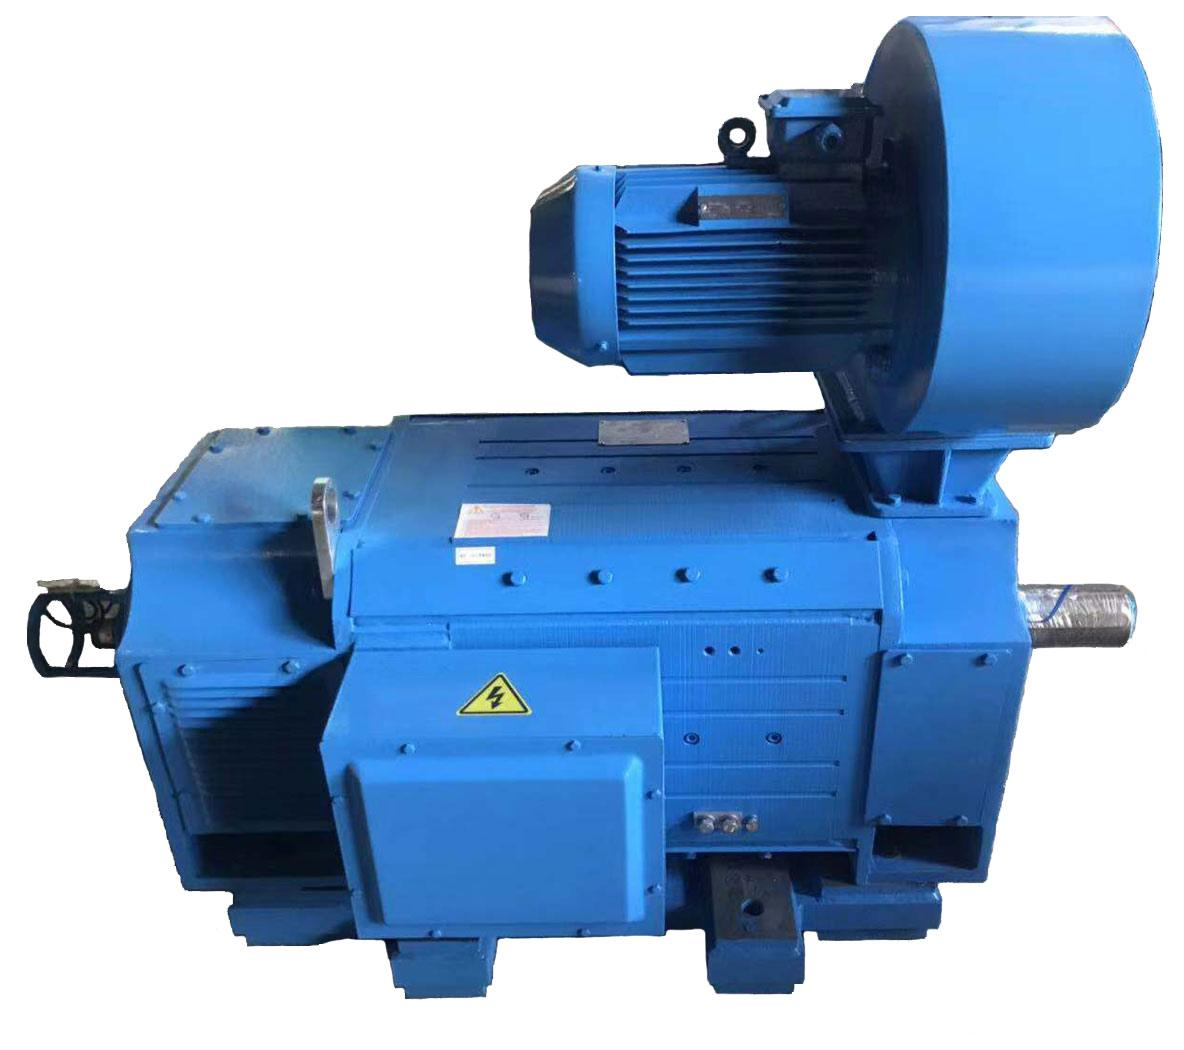 Z4 Series Electric DC Motor for Plastic Extruding Machine/ Extruder